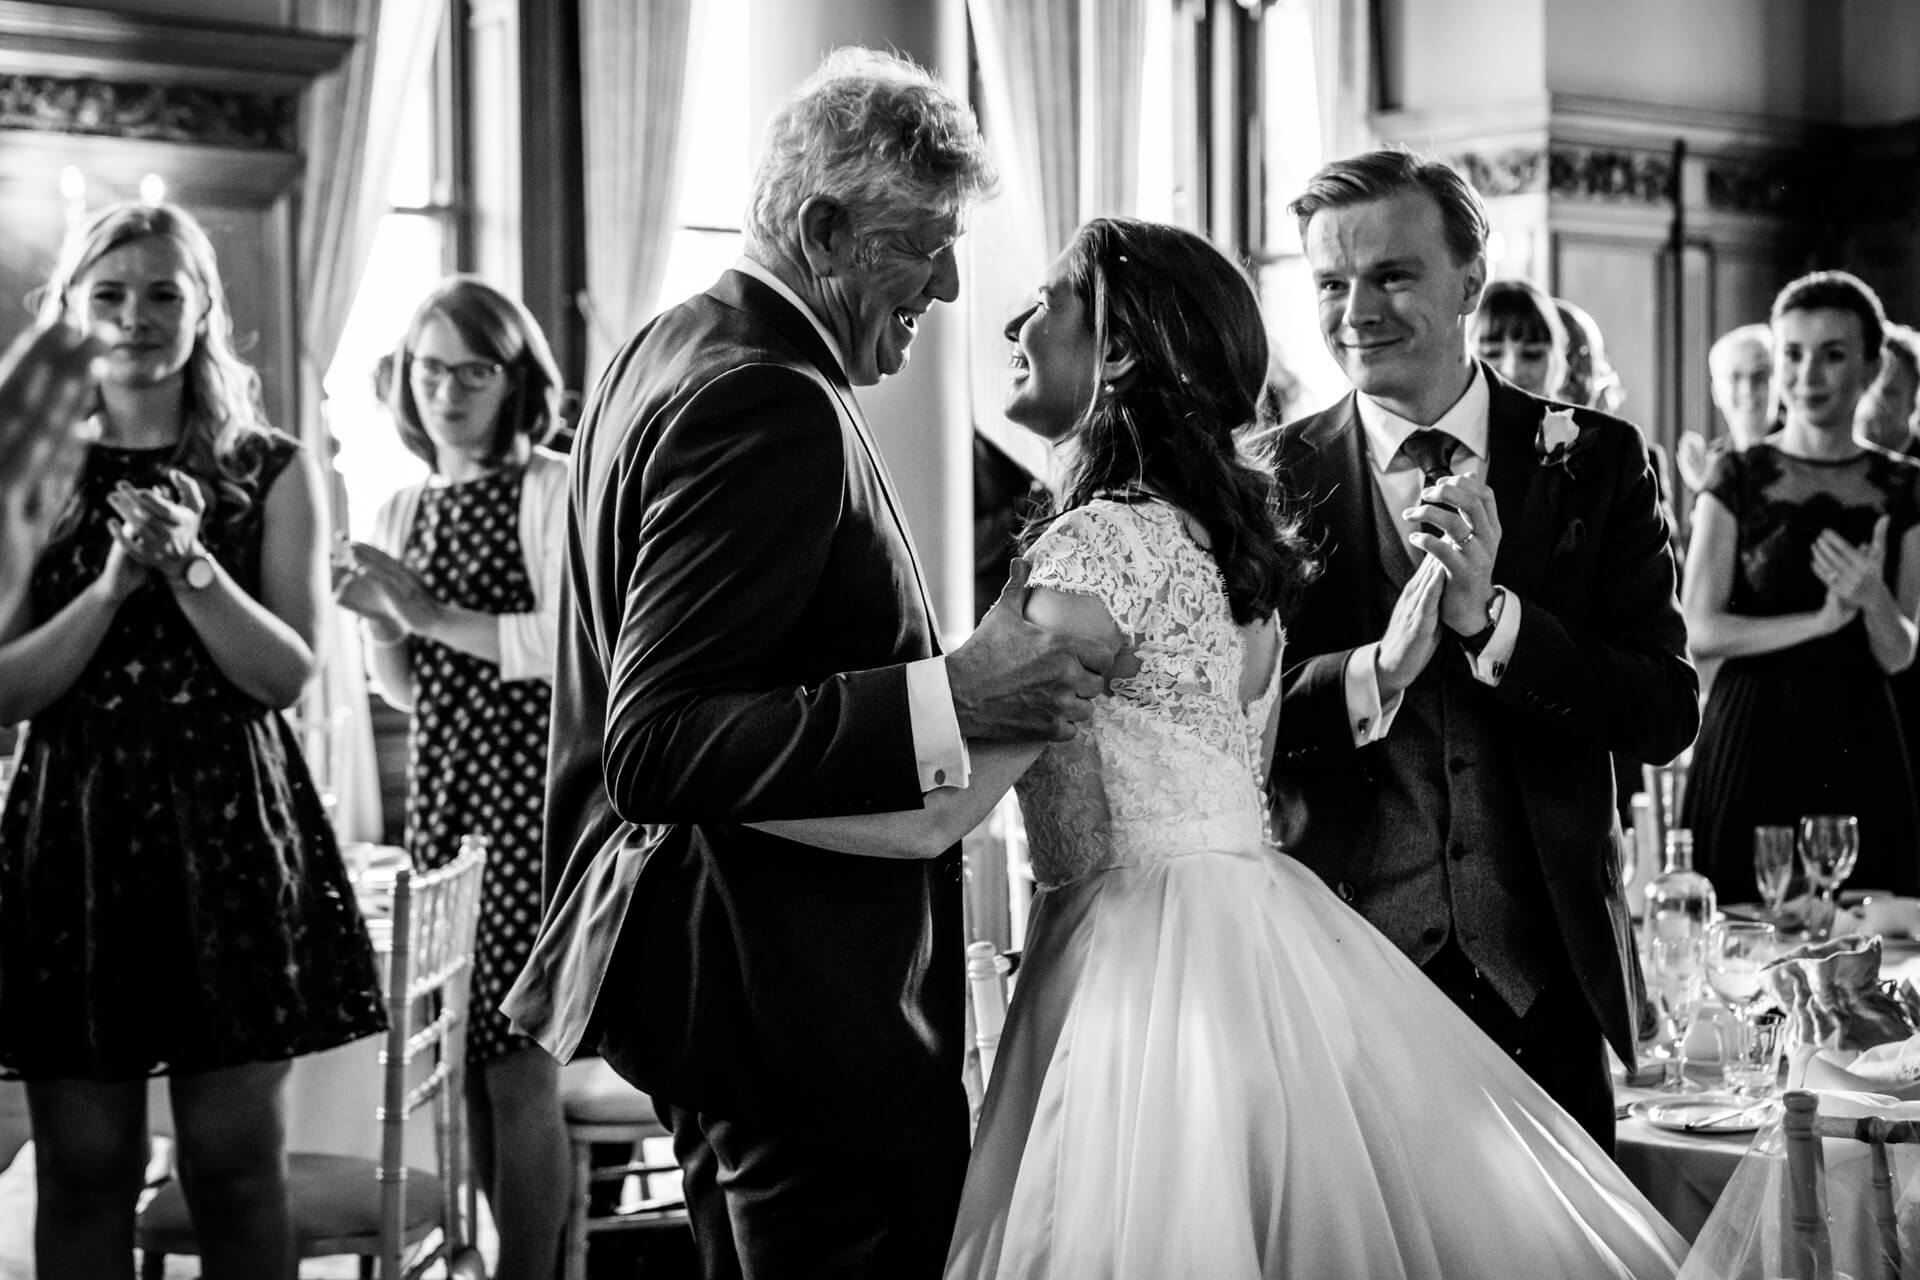 bride and her dan laugh together as the wedding guests clap